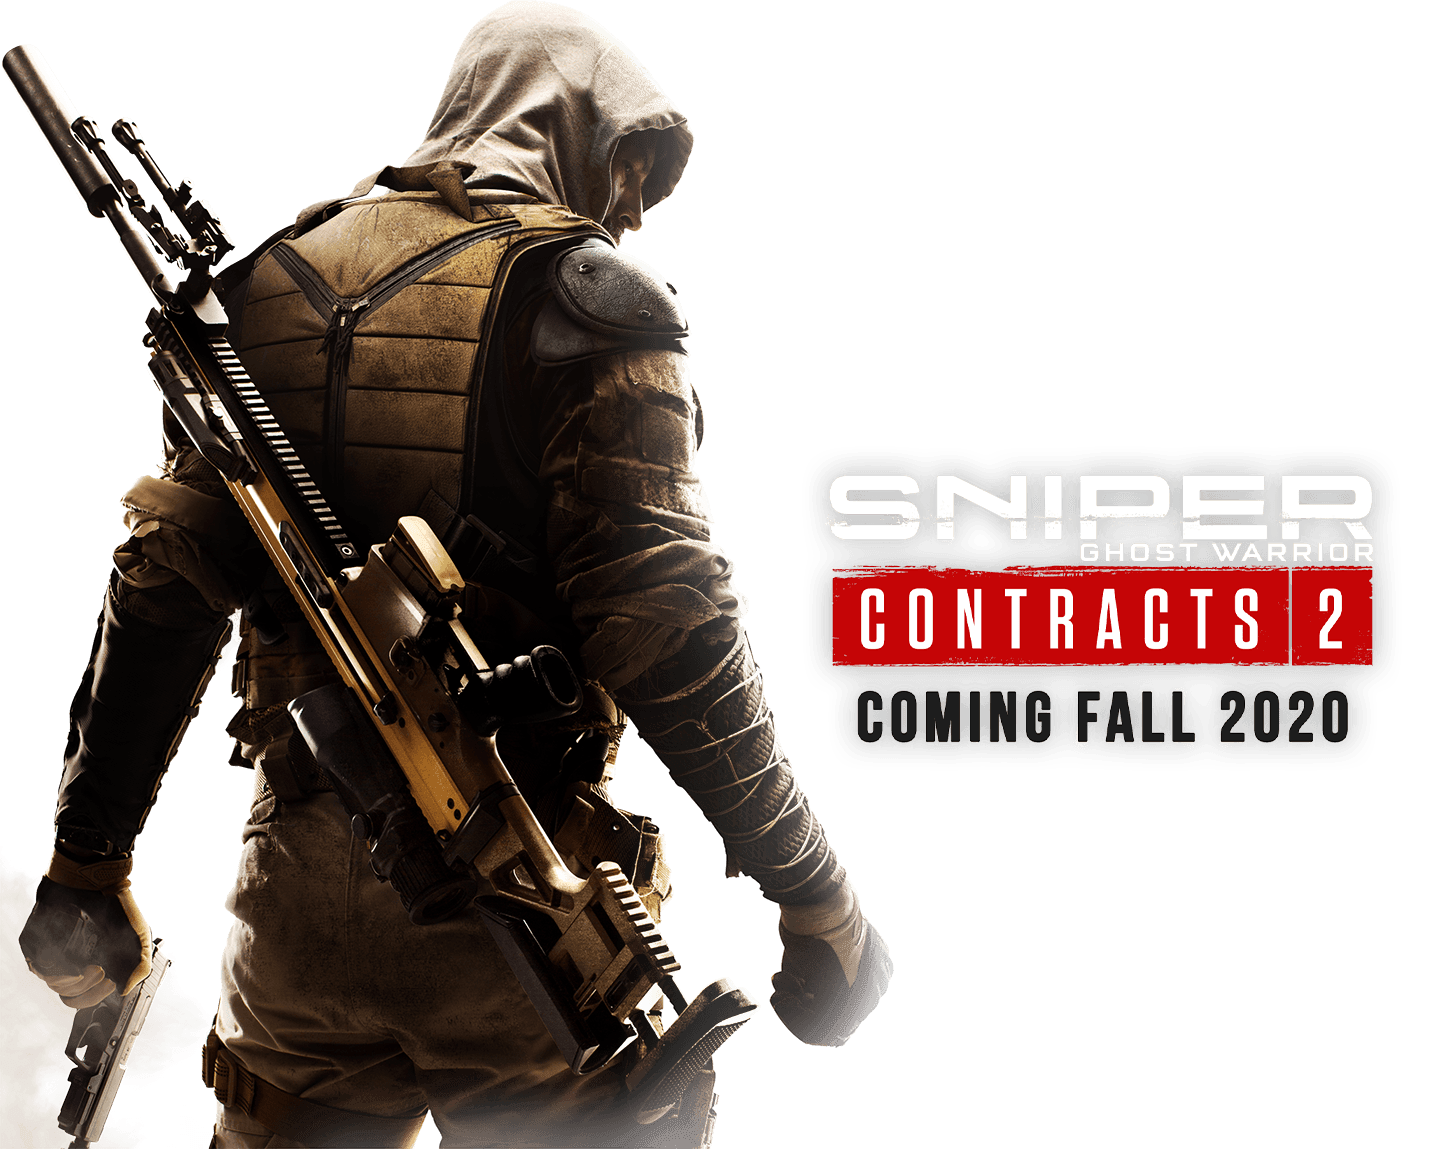 Sniper Contracts 2: Gameplay Trailer with Release Date